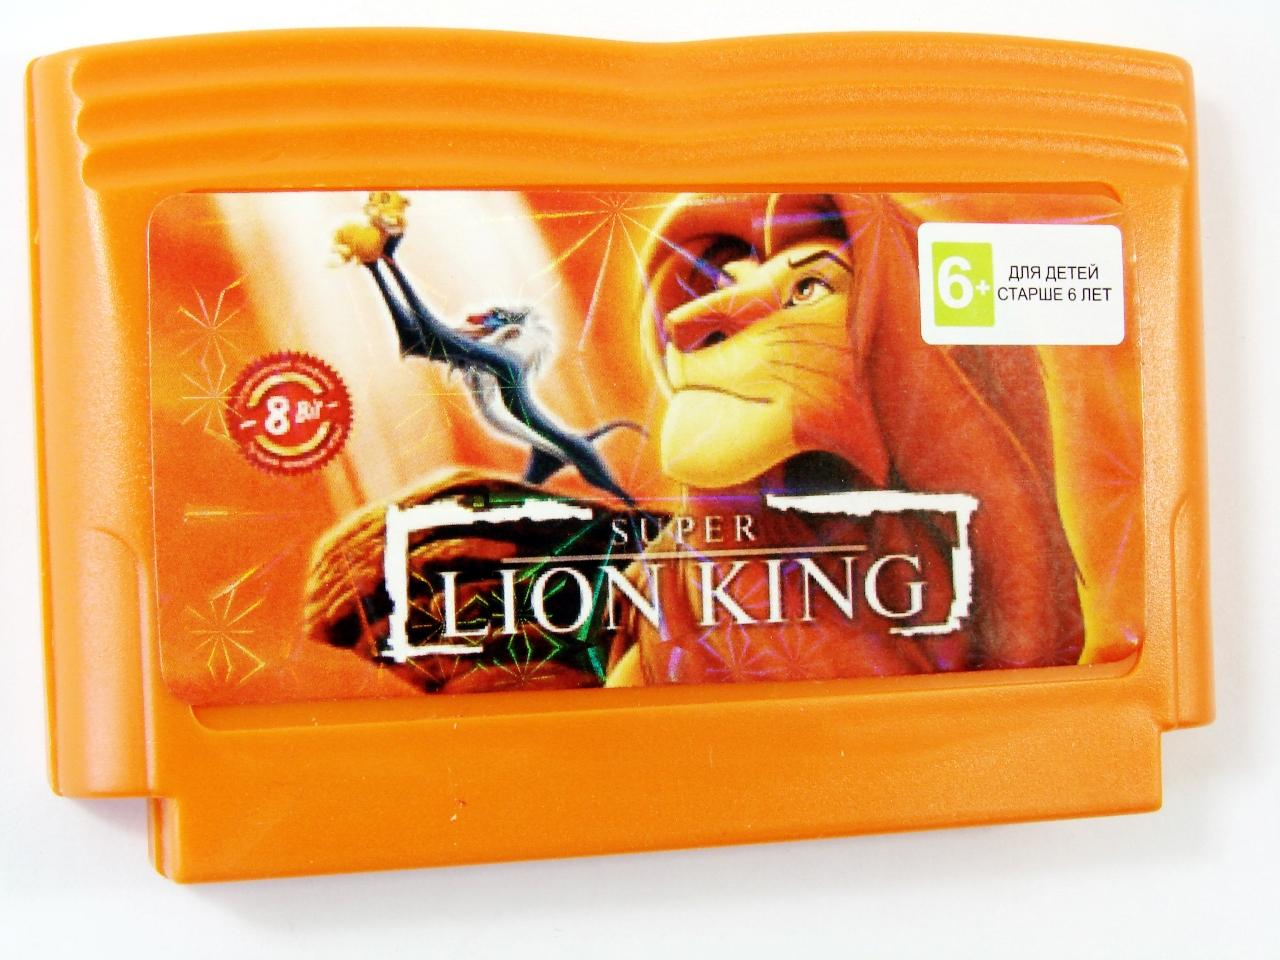 Lion King (Dendy)